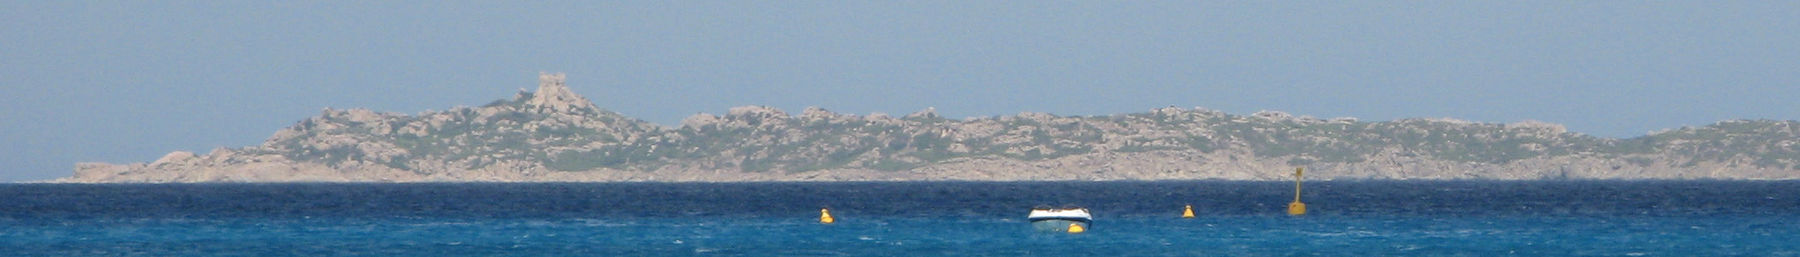 Cagliari banner Coasline from the sea.jpg